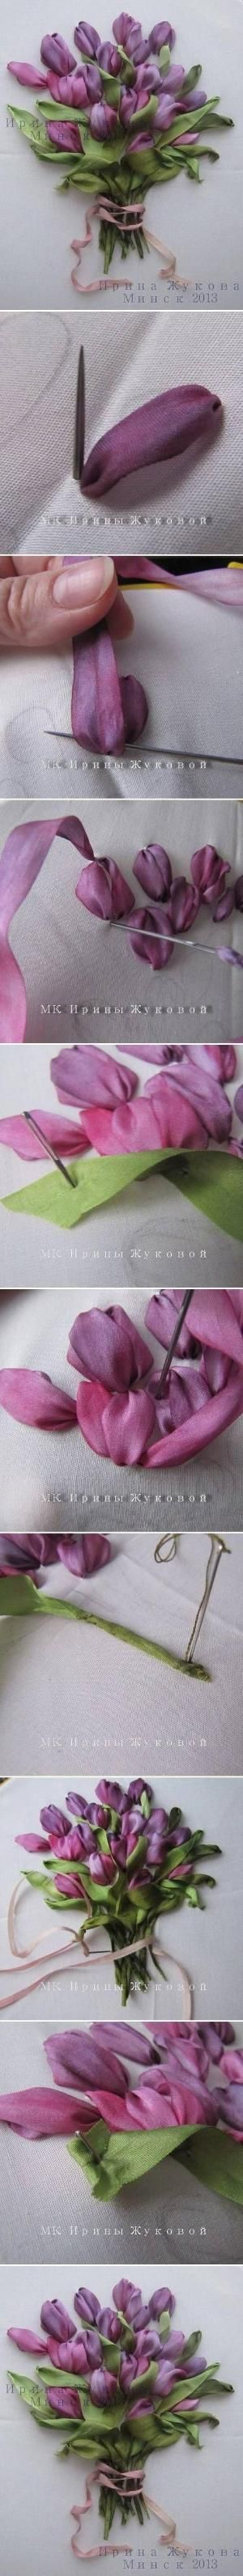 Embroidery Ribbon Flower DIY by wanting